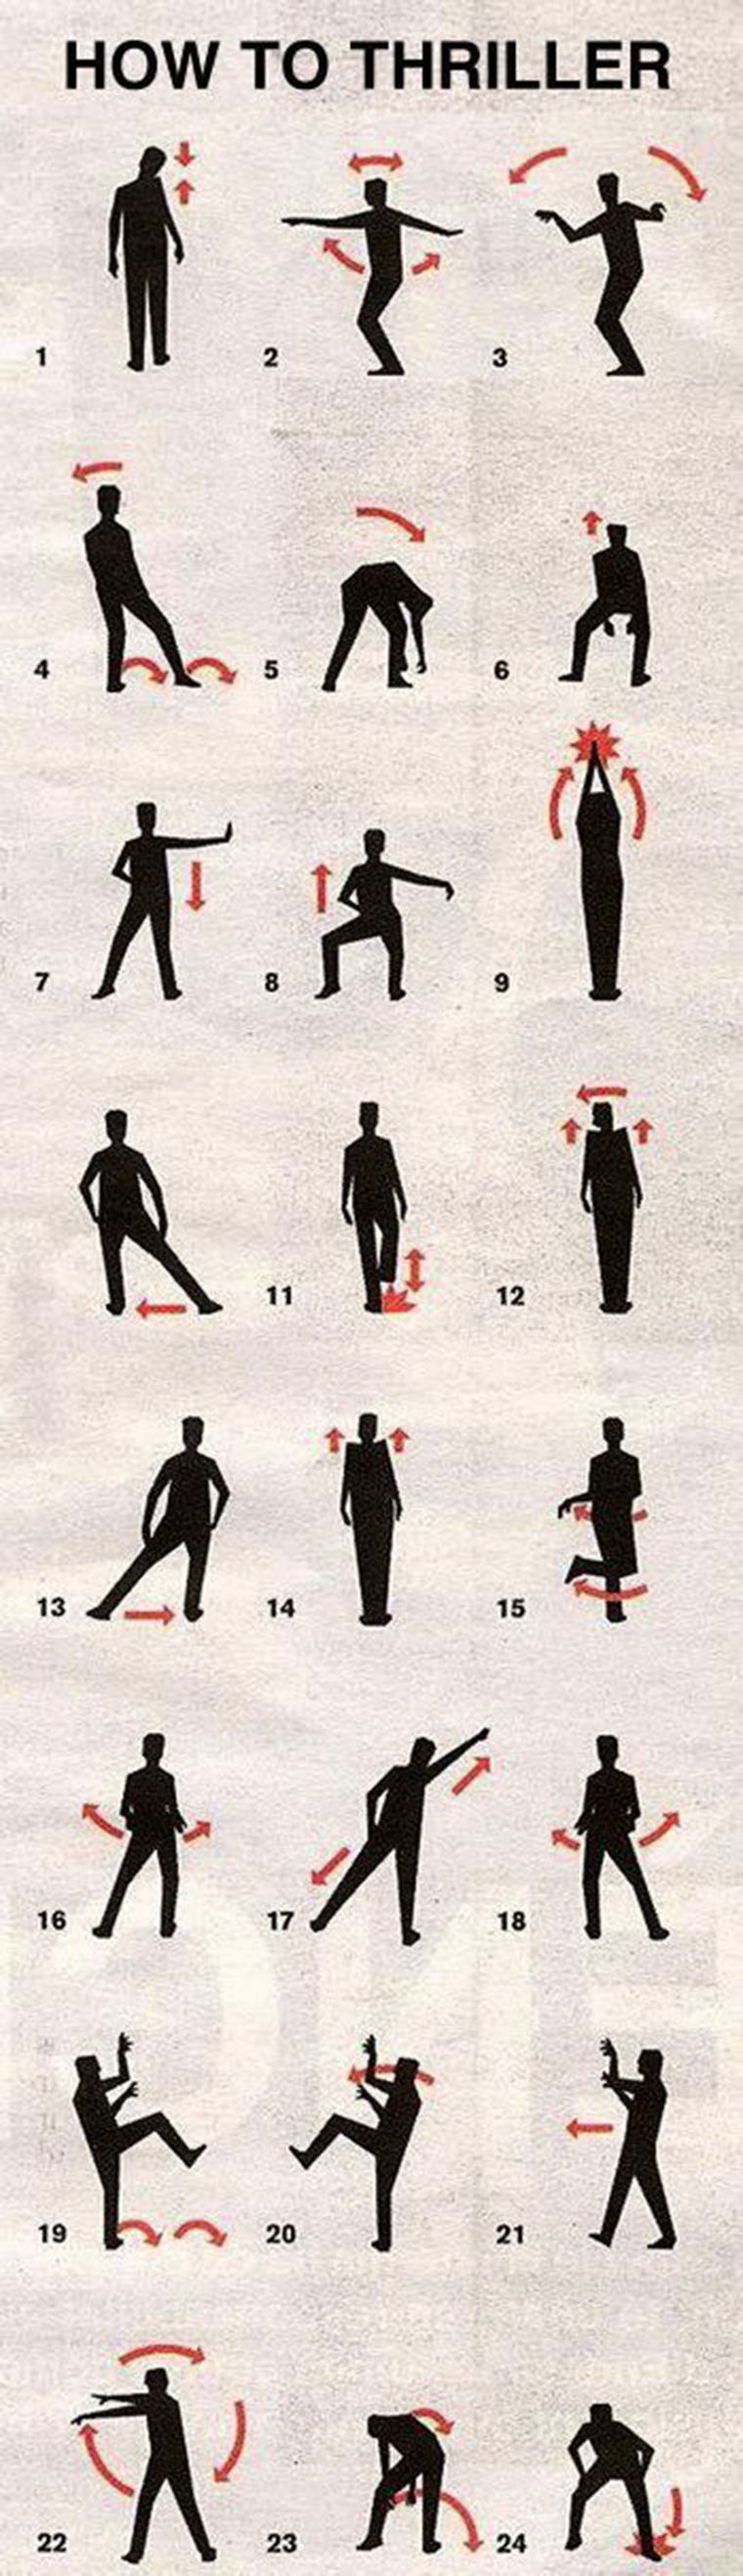 how-to-thriller-mj